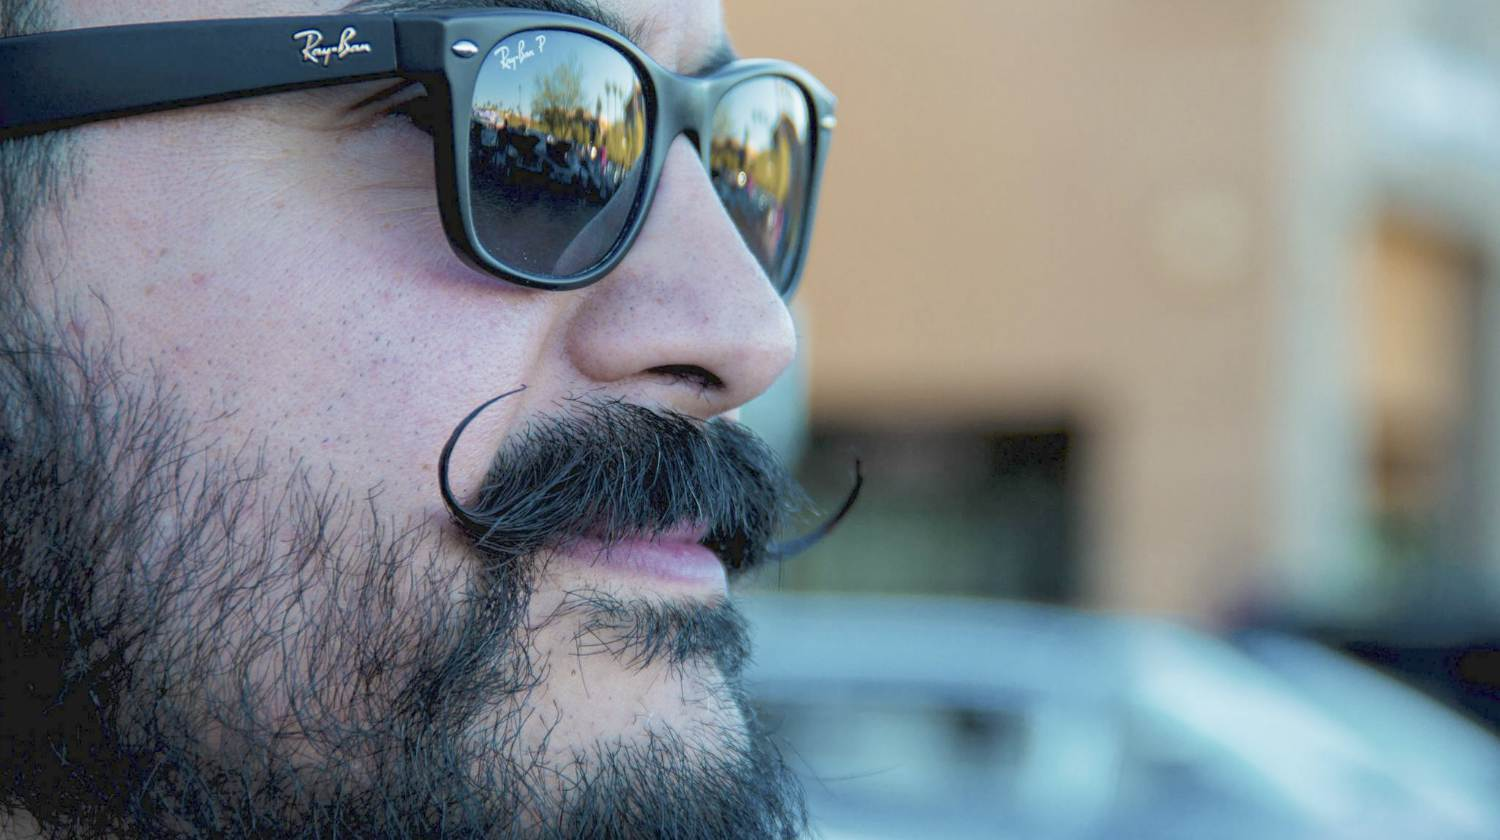 How To Trim A Mustache In 17 Easy Steps